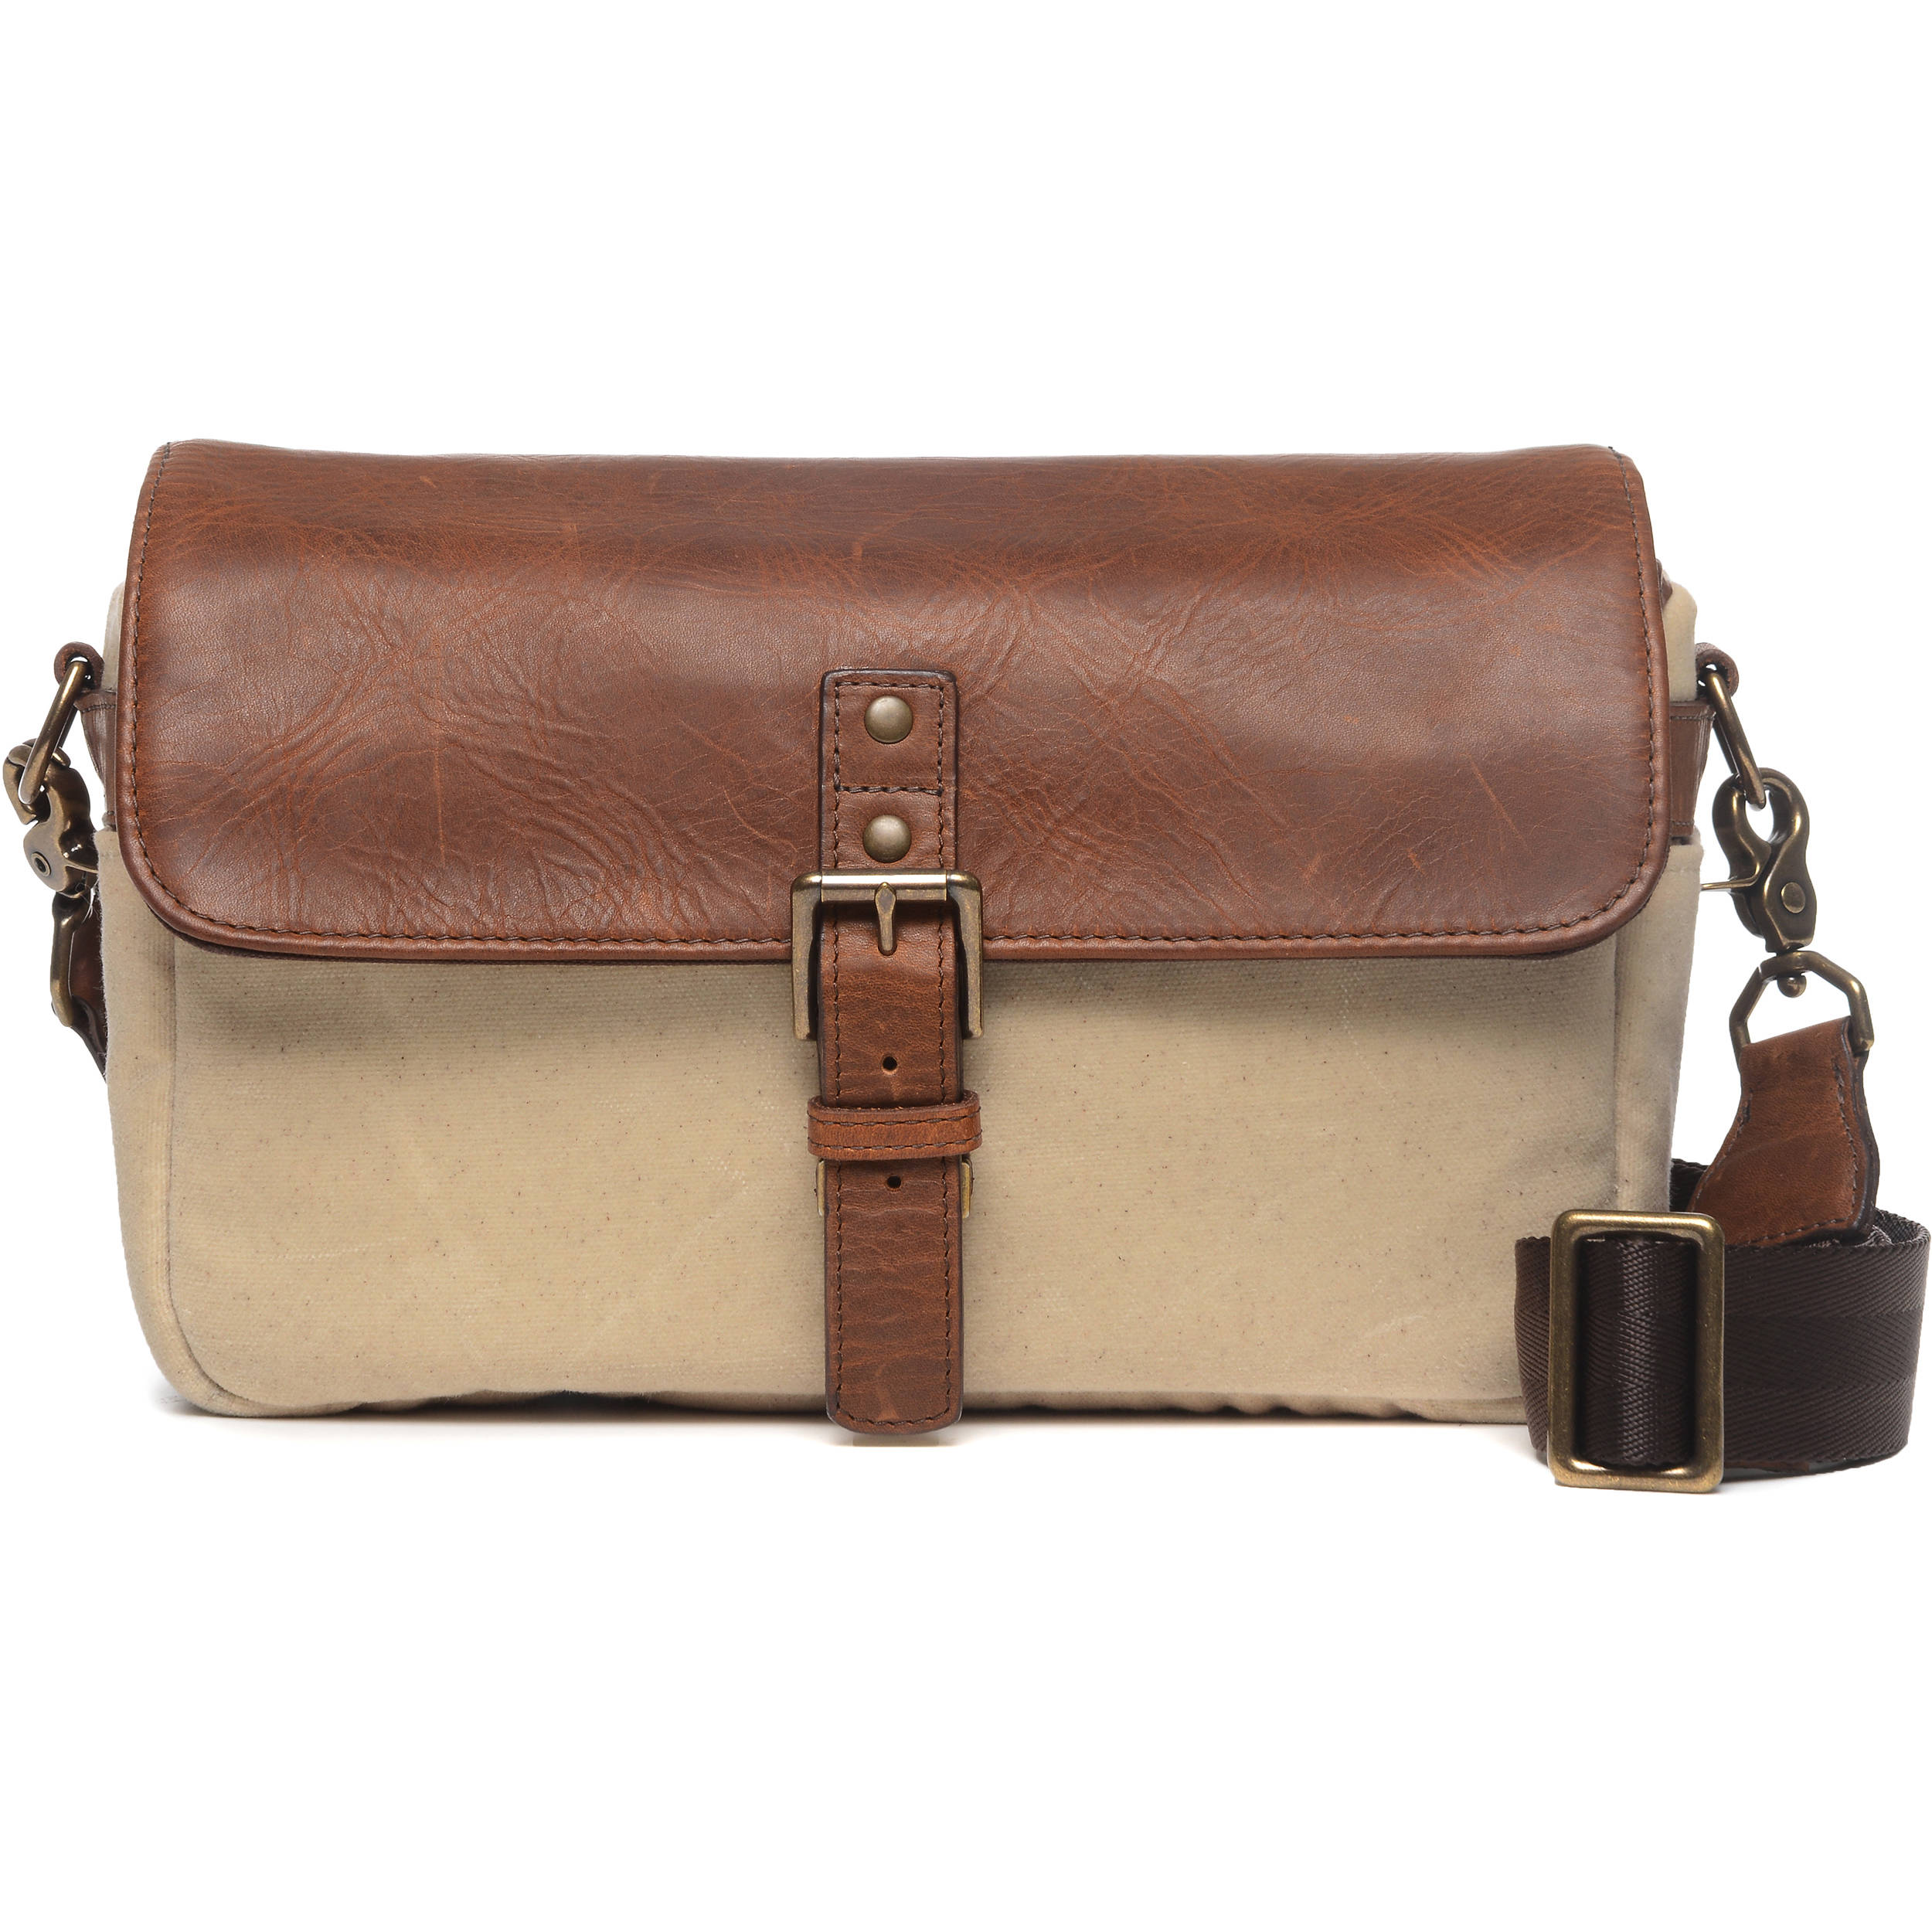 1d896291192 ONA Bowery 50/50 Camera Bag (Leather/Canvas, Natural/Antique Cognac